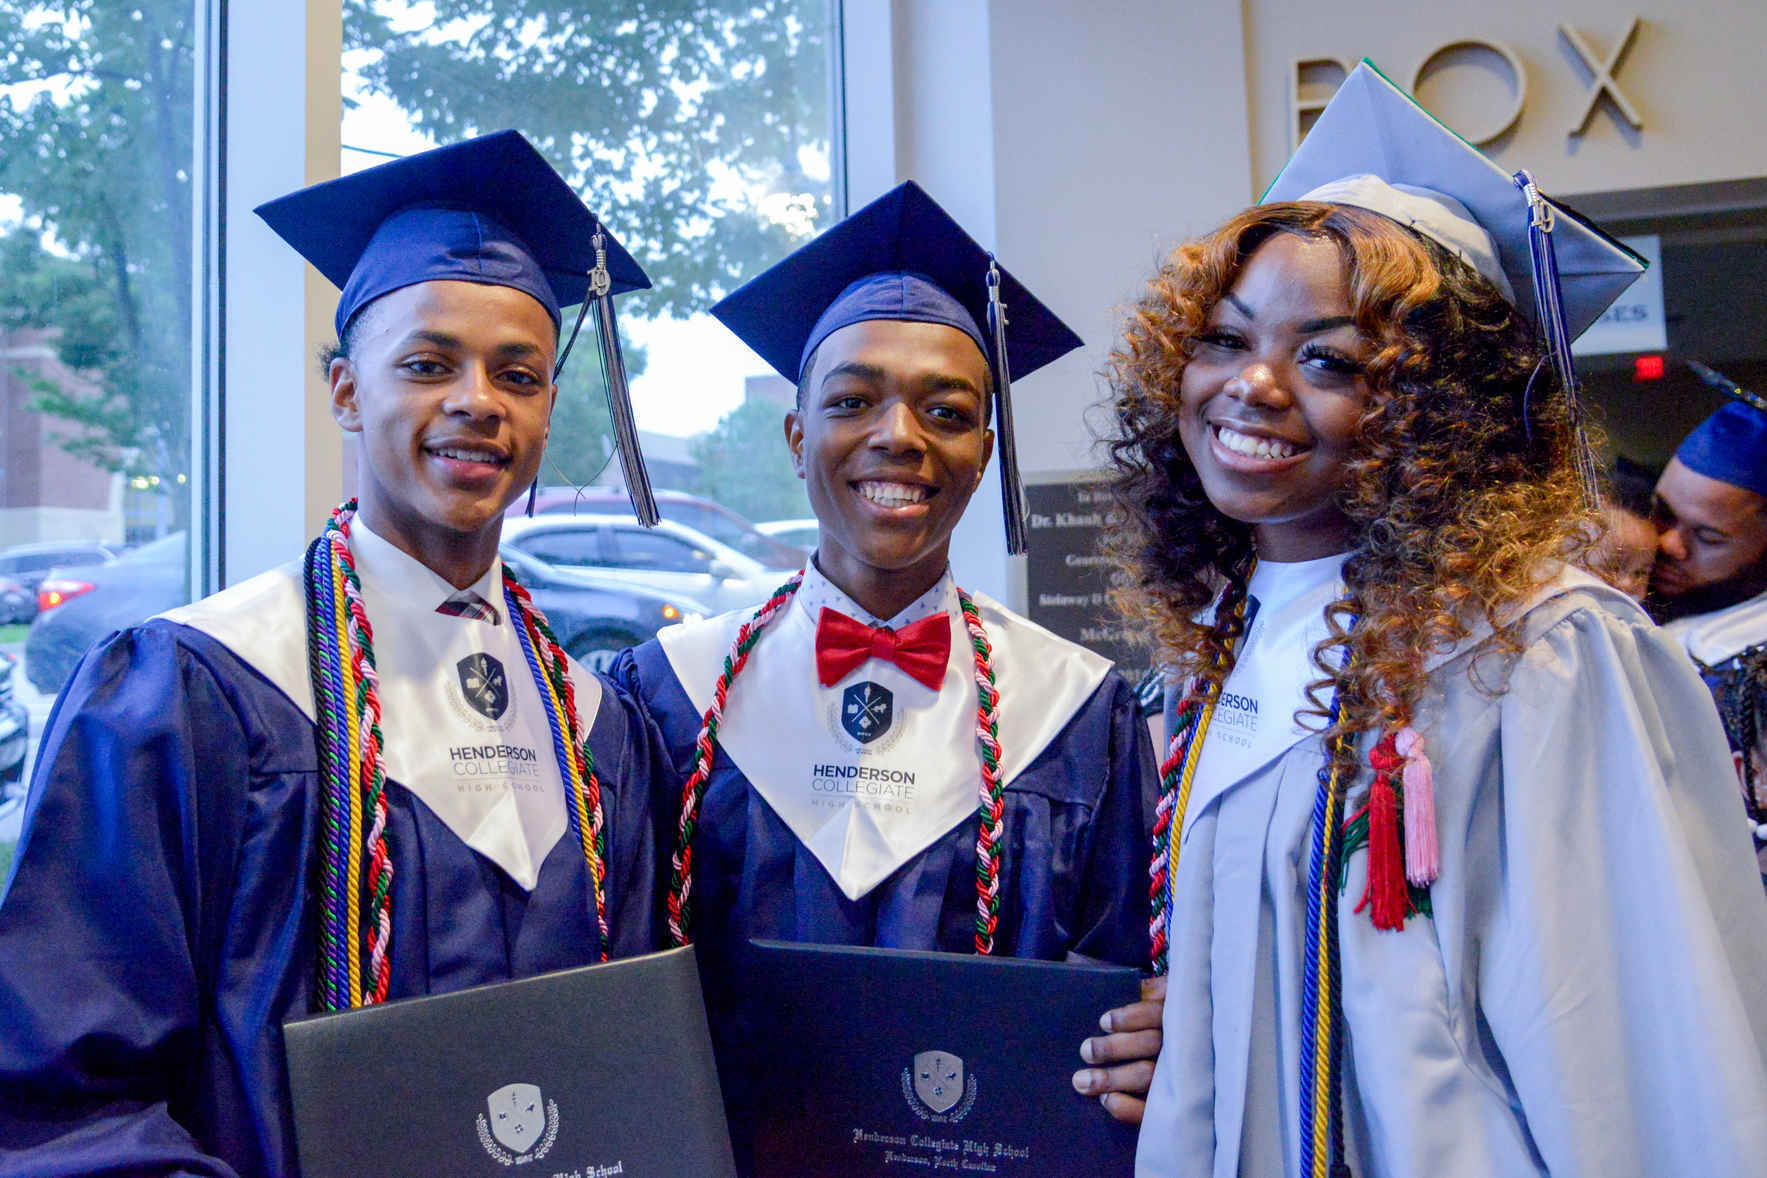 Give now to provide students in Vance County with an exceptional education. image